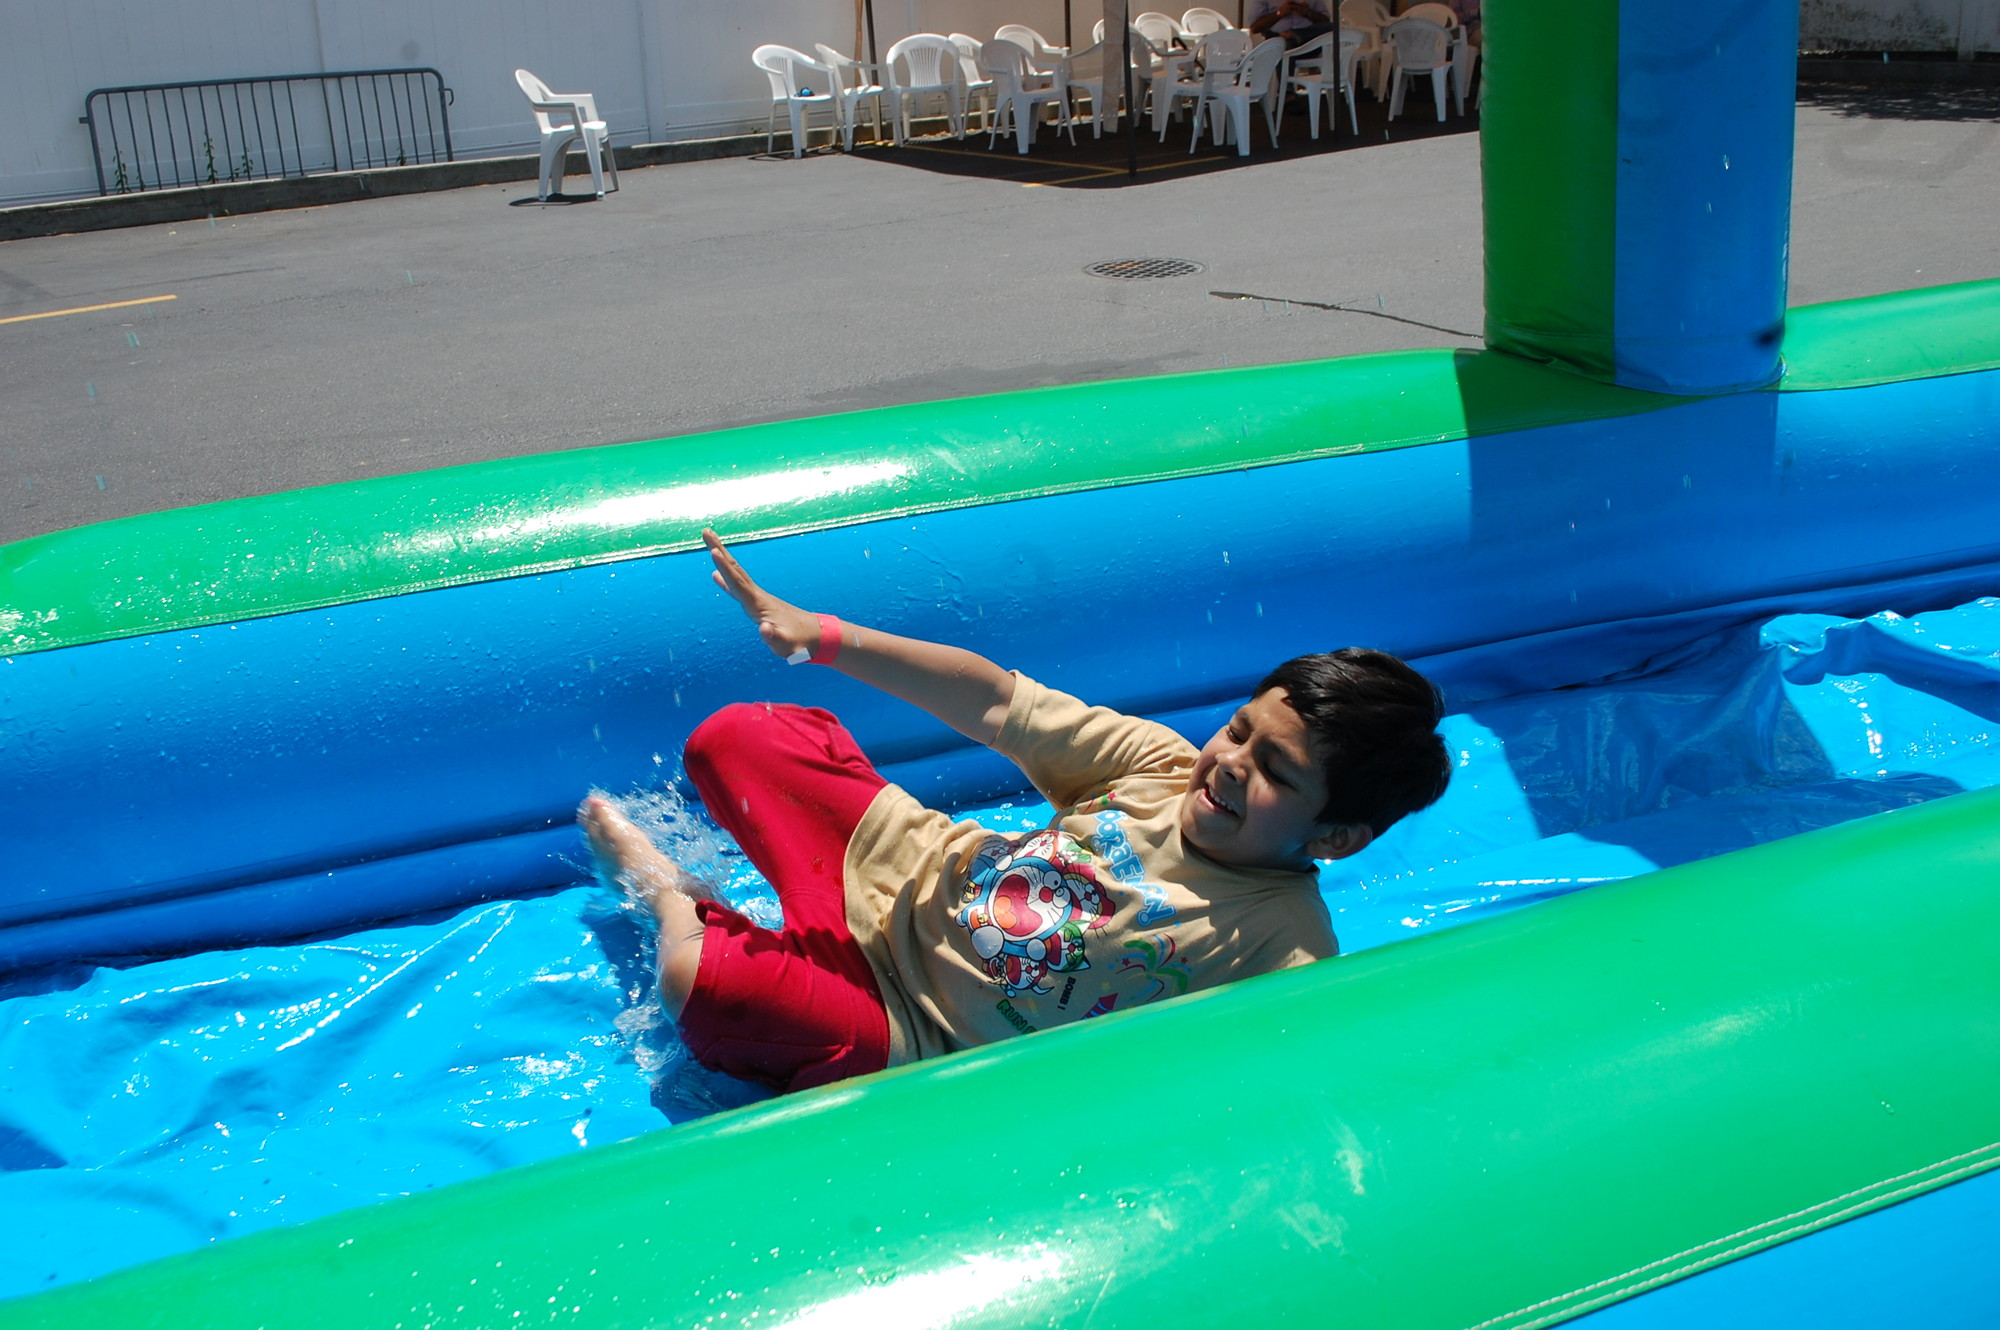 Omar Syed, 6, of Valley Stream, enjoyed the water slide at Masjid Hamza's annual spring fair last Saturday afternoon.